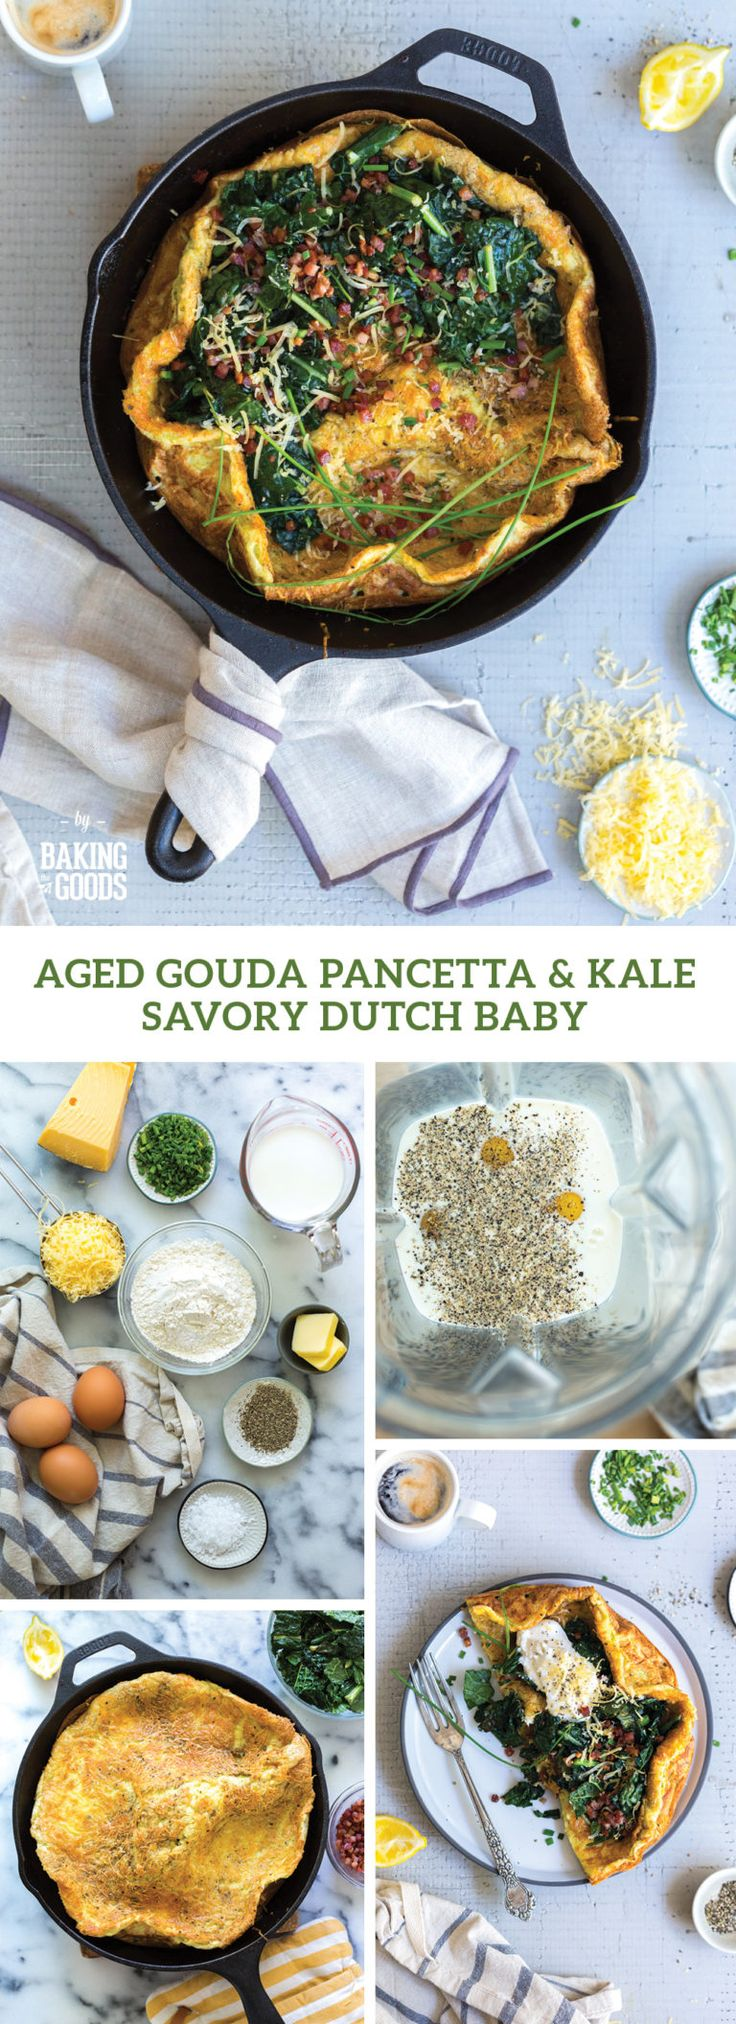 Aged Gouda Pancetta & Kale Savory Dutch Baby - Baking the ...